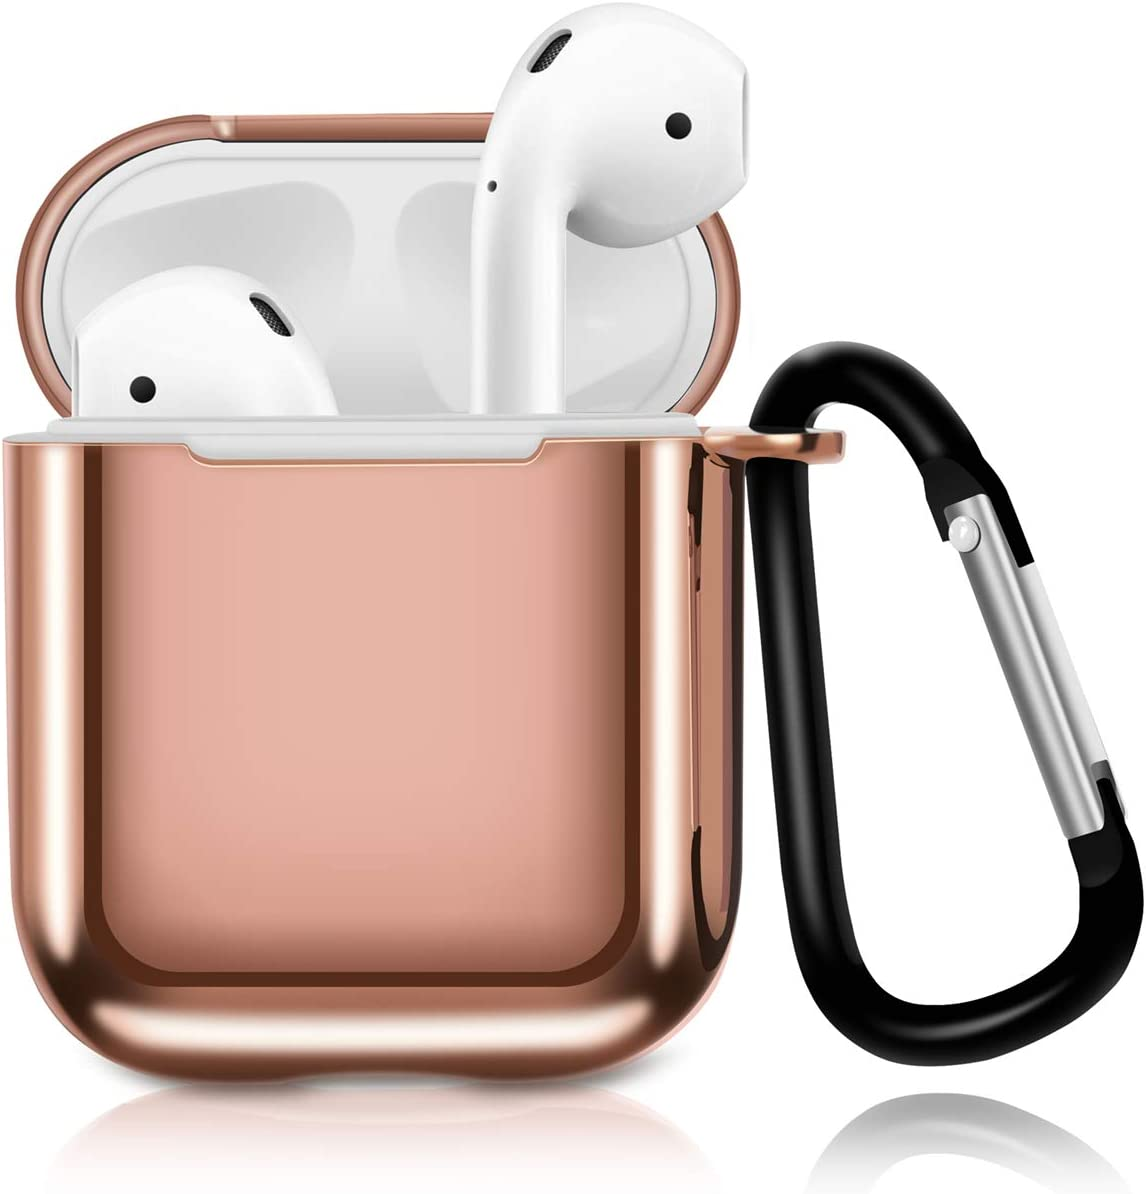 Solomo Compatible for AirPods Case Cover, Luxury Plating TPU Soft Skin Protective Case Shockproof Cover [Front LED Visible] with Keychain Carrying for Apple AirPods 1st / 2nd Charging Case (Rose Gold)